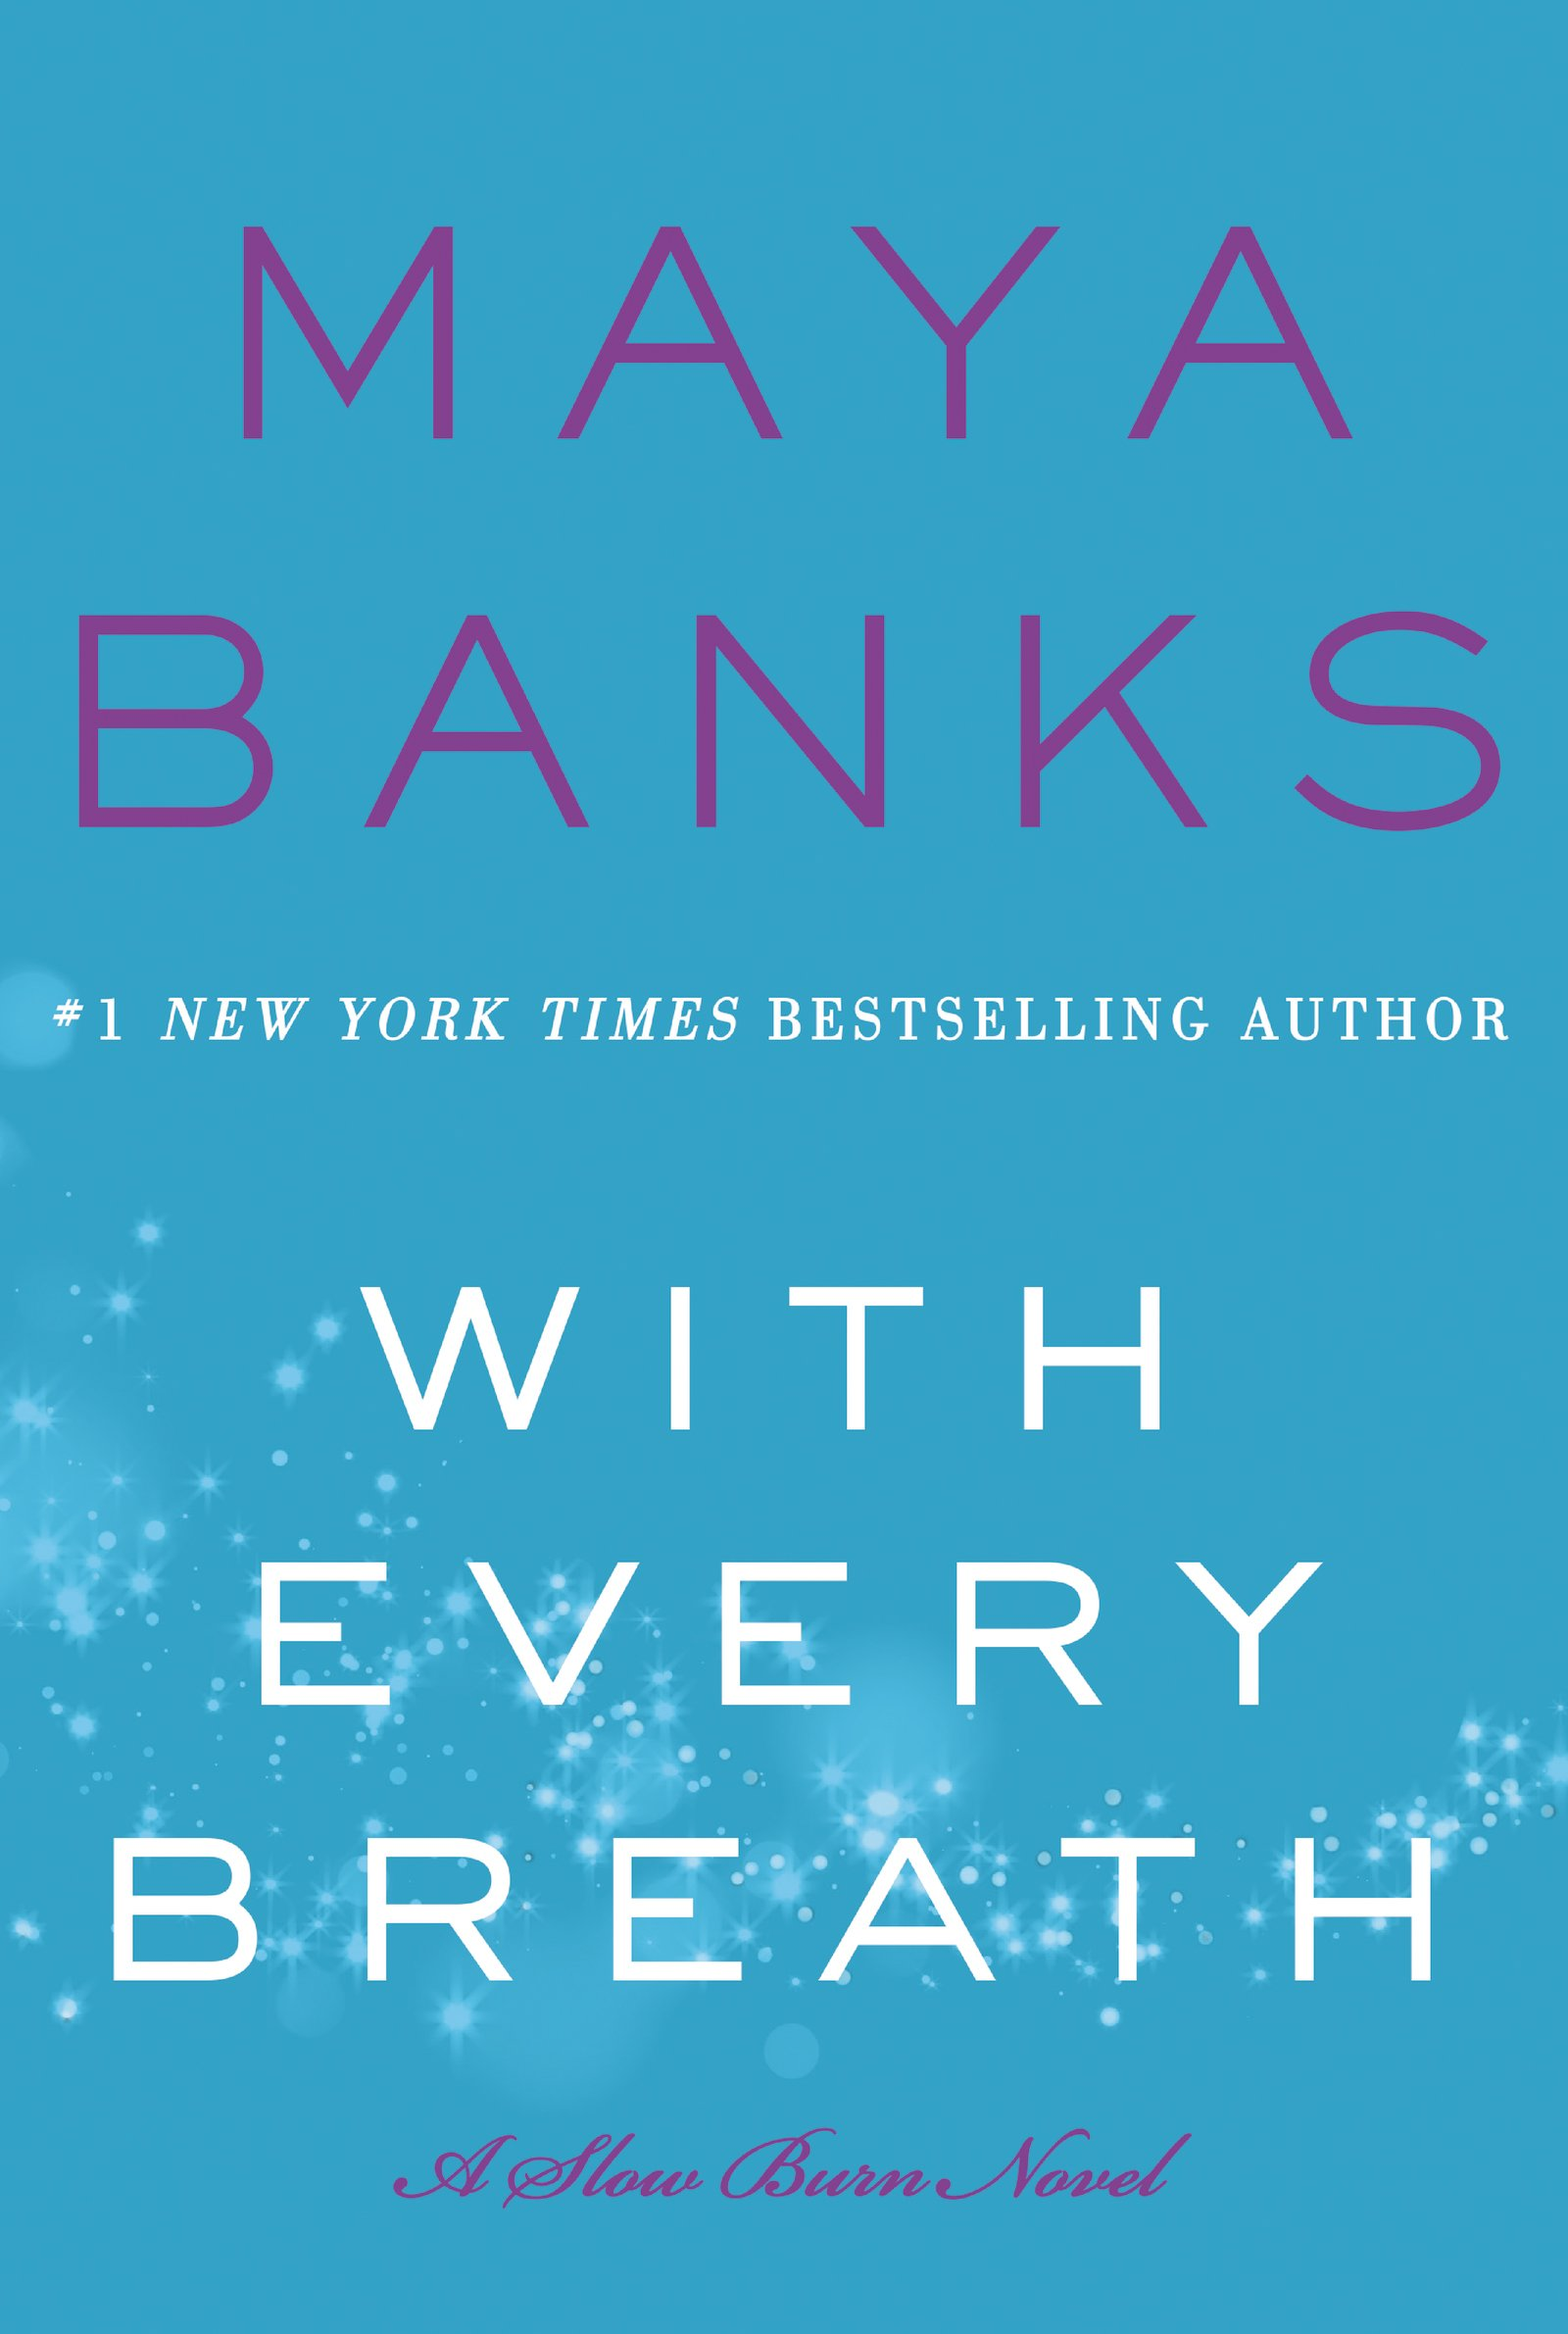 Maya Banks' With Every Breath